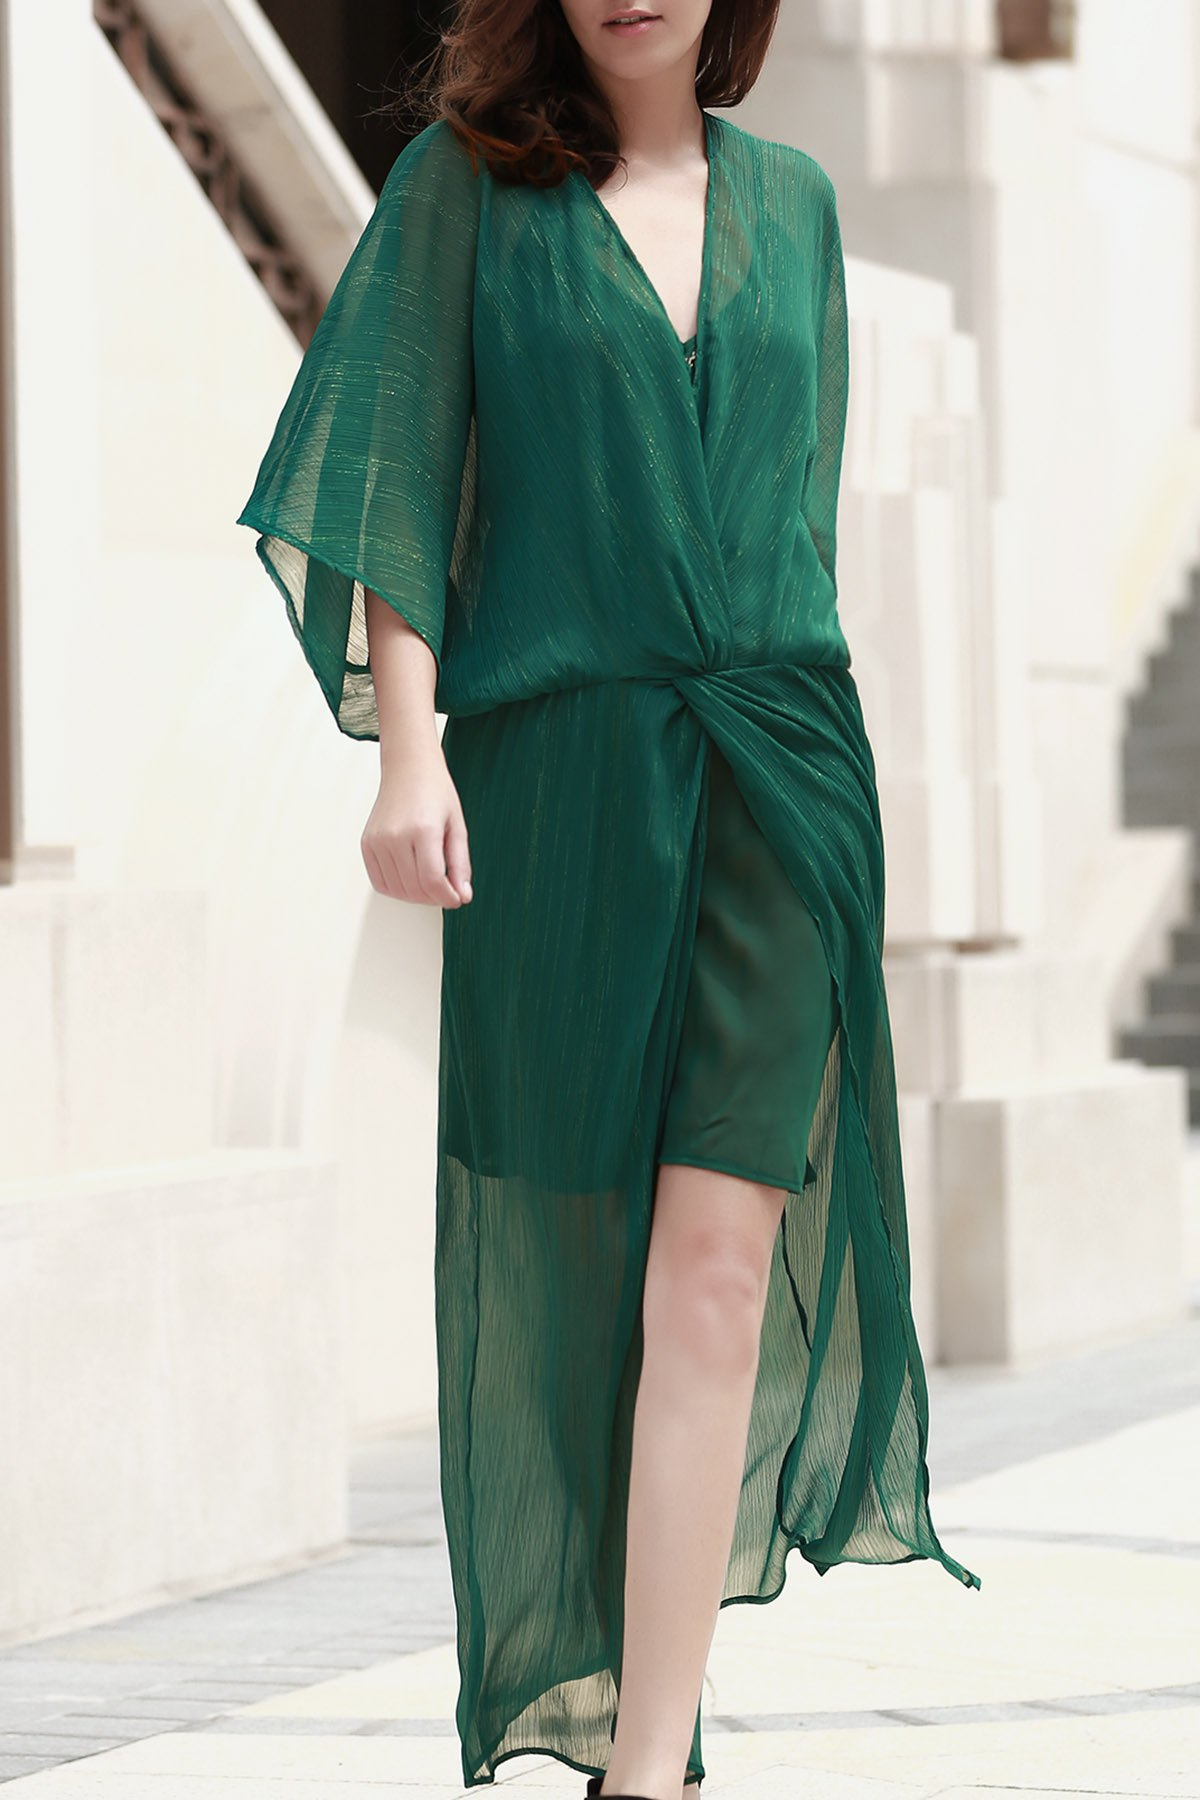 Cami Green Dress and Chiffon Maxi Dress Twinset